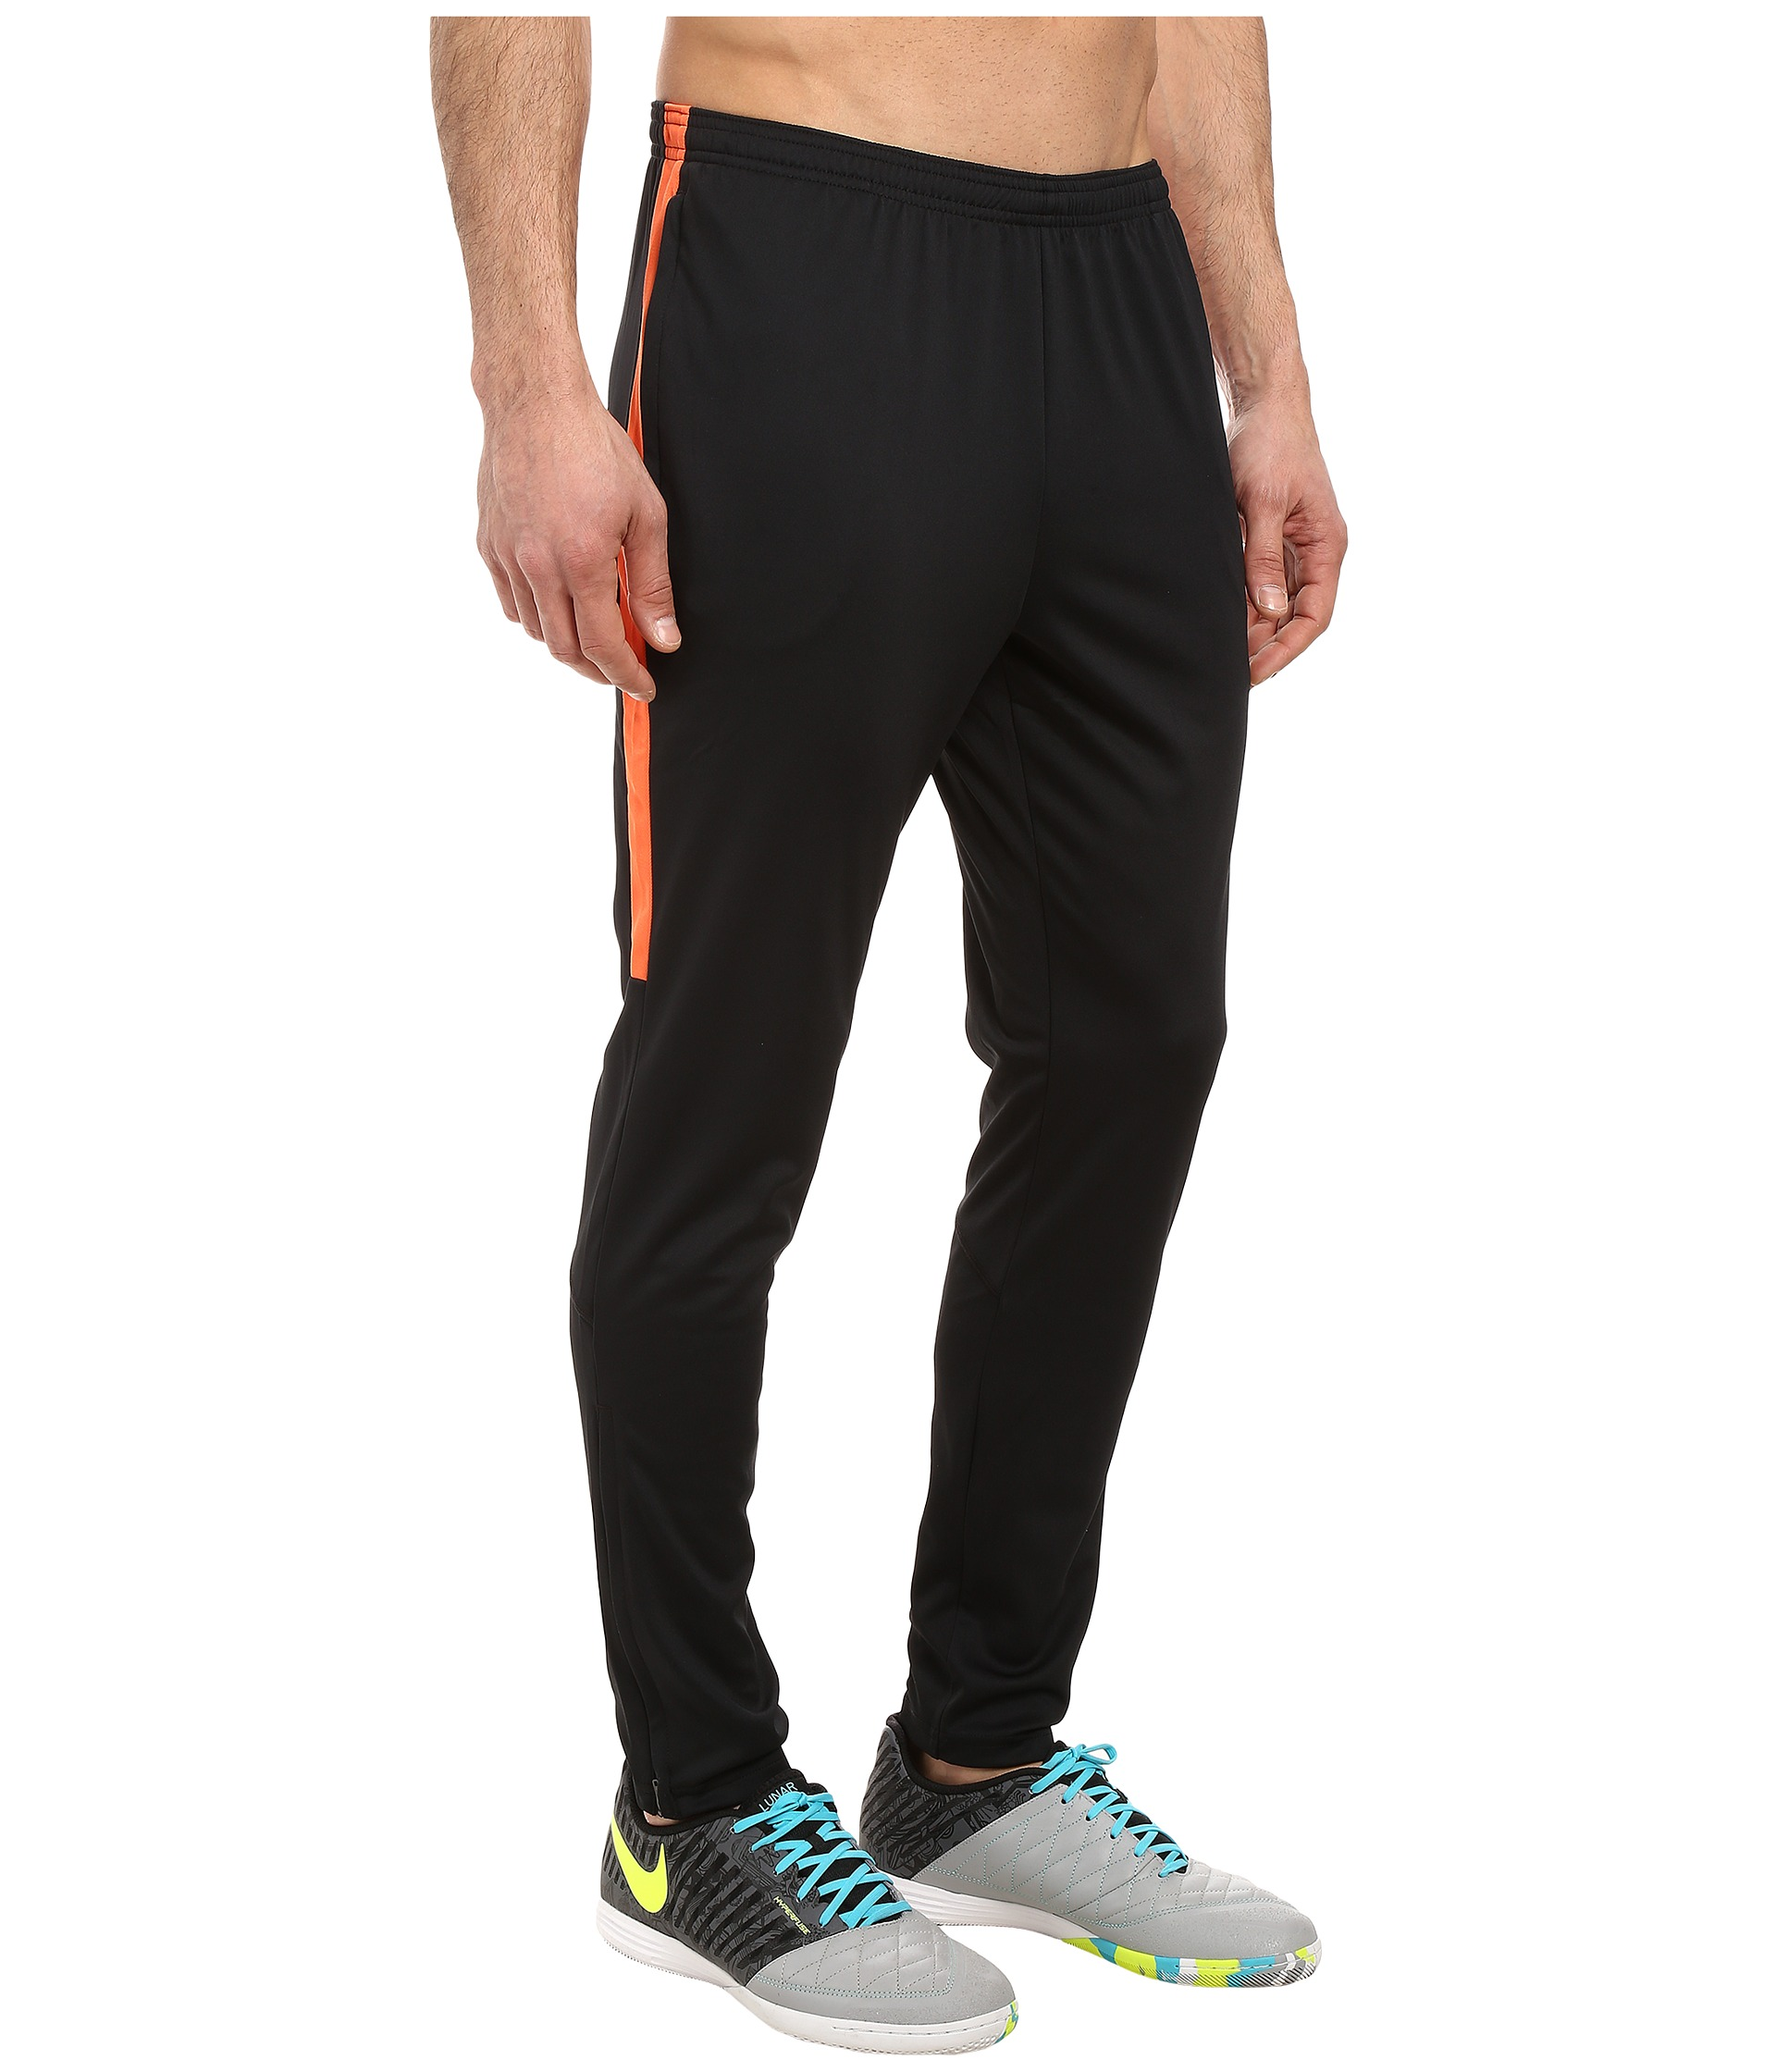 nike dry academy soccer pant black black turf orange turf orange free shipping both. Black Bedroom Furniture Sets. Home Design Ideas